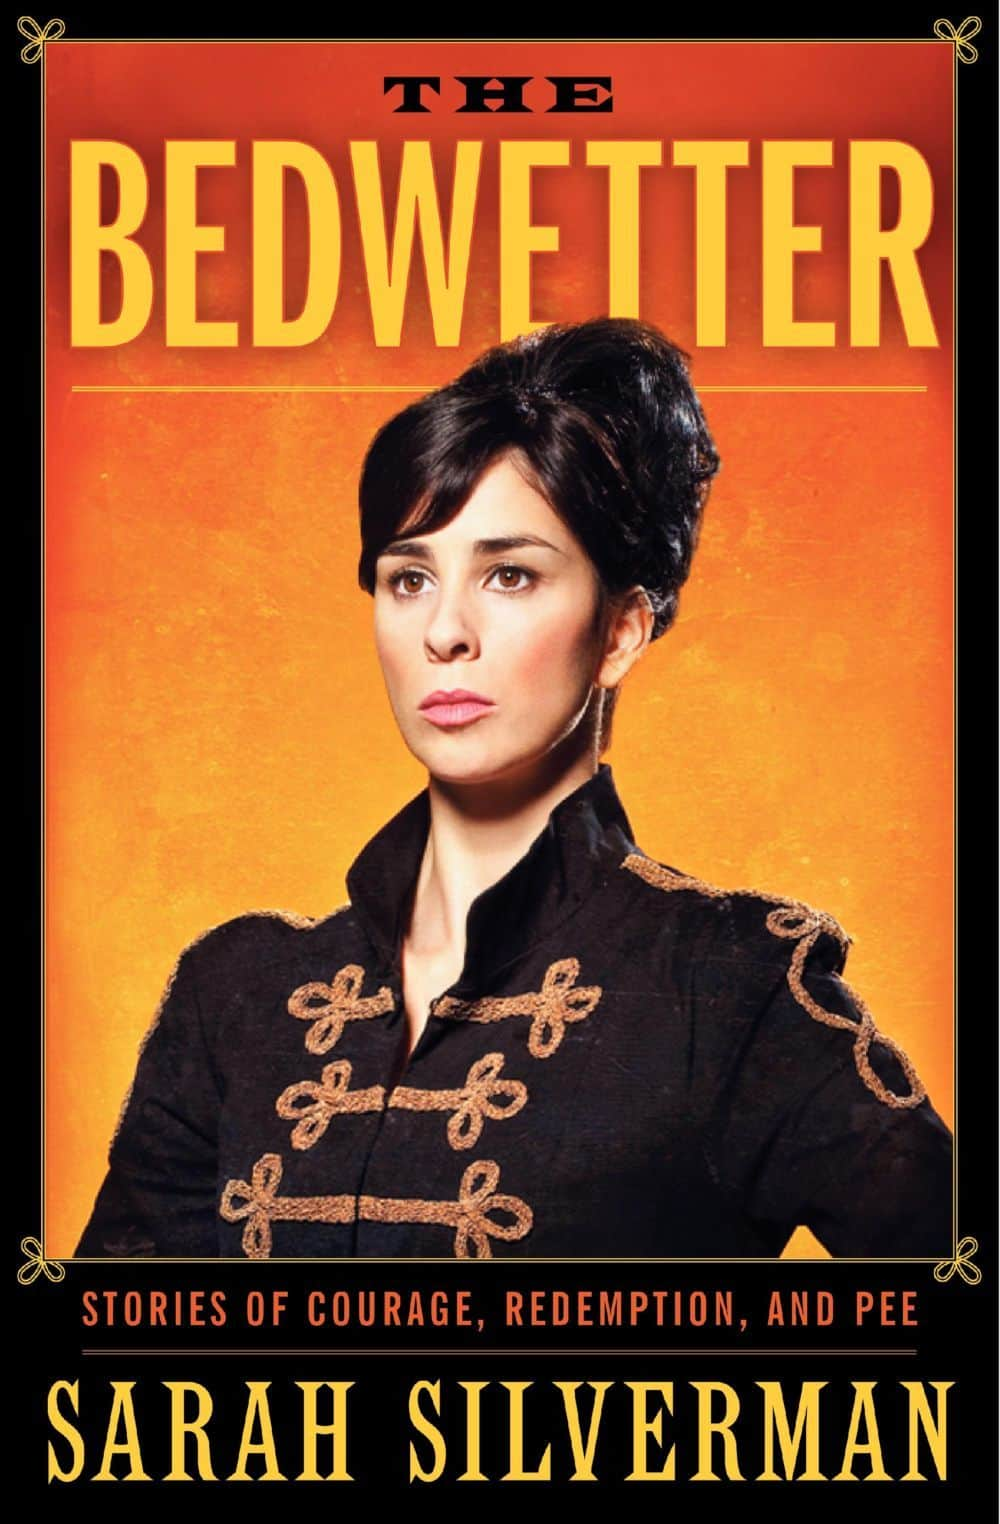 film reviews | movies | features | BRWC Sarah Silverman's The Bedwetter: Stories Of Redemption, Courage & Pee